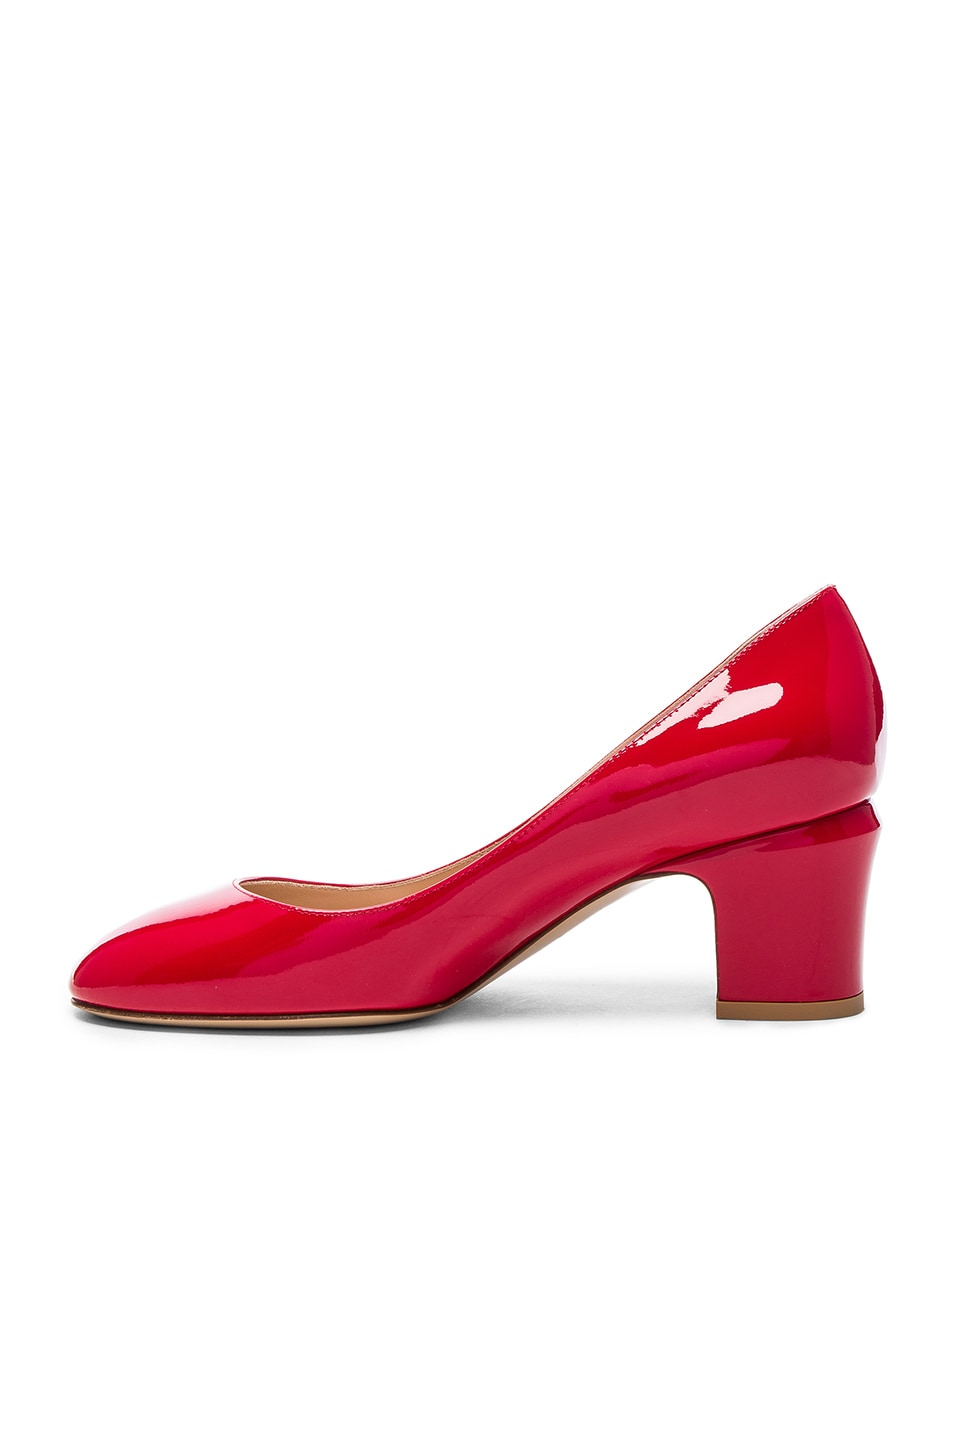 Image 5 of Valentino Patent Leather Tan-Go Pumps in Red